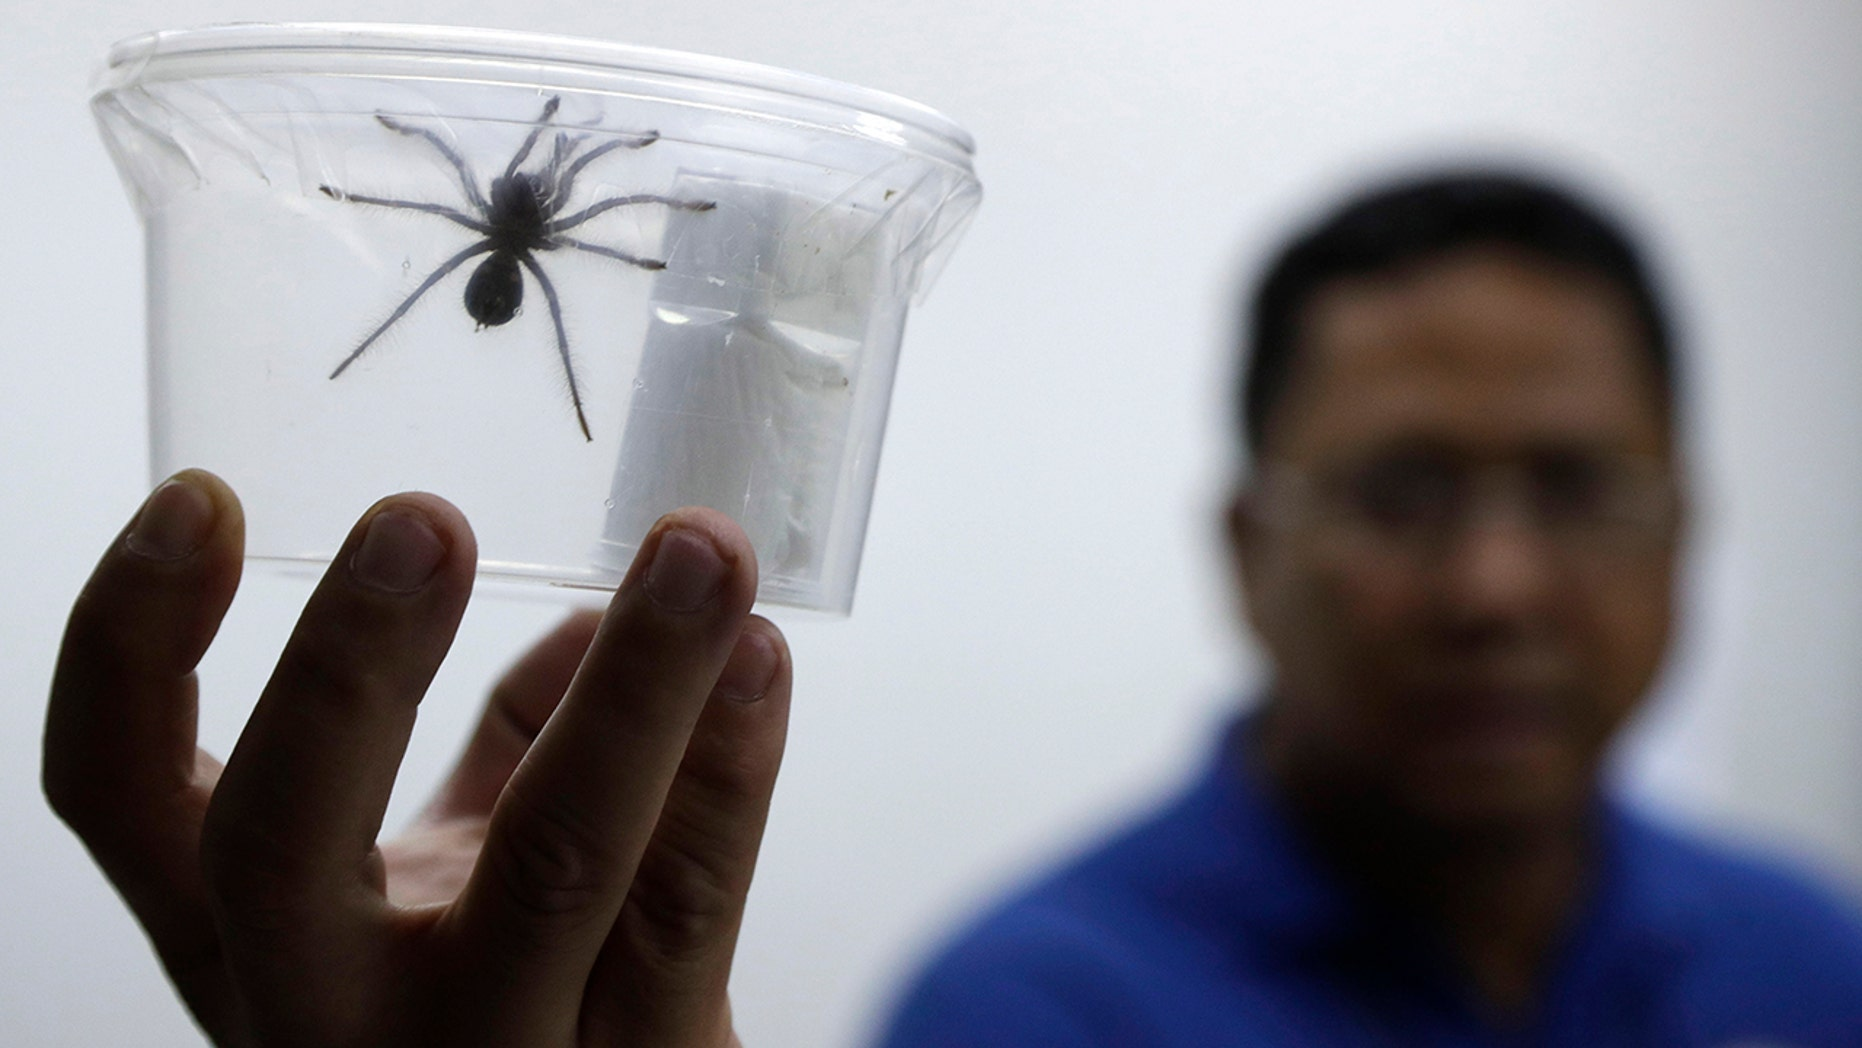 Philippine customs officials found 757 tarantulas inside gift-wrapped boxes of cookies and oatmeal at a mail exchange center near Manila's international airport on Monday. (AP Photo/Aaron Favila)